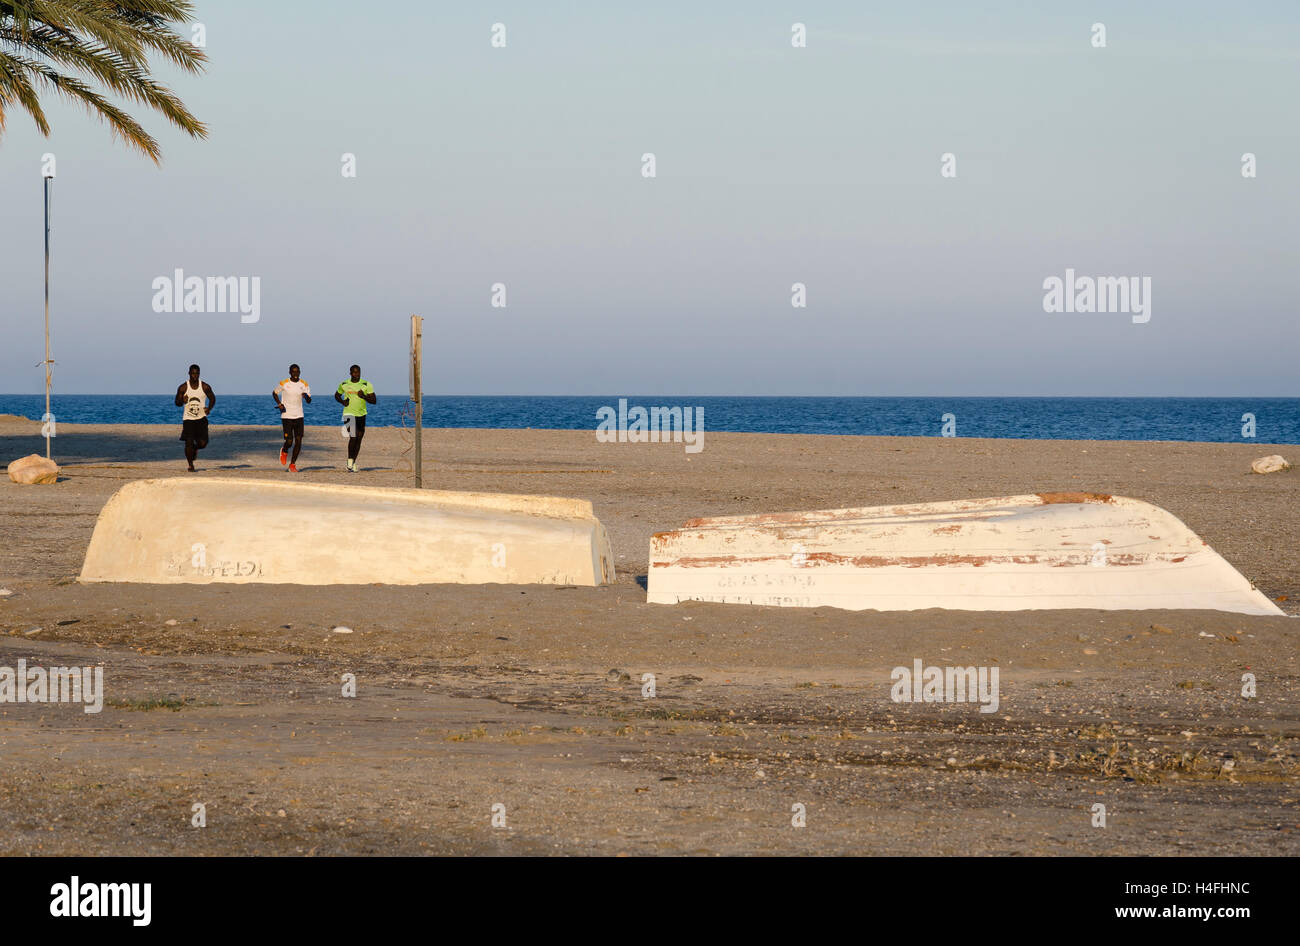 A runners in a beach of Carboneras, Almería, Spain - Stock Image